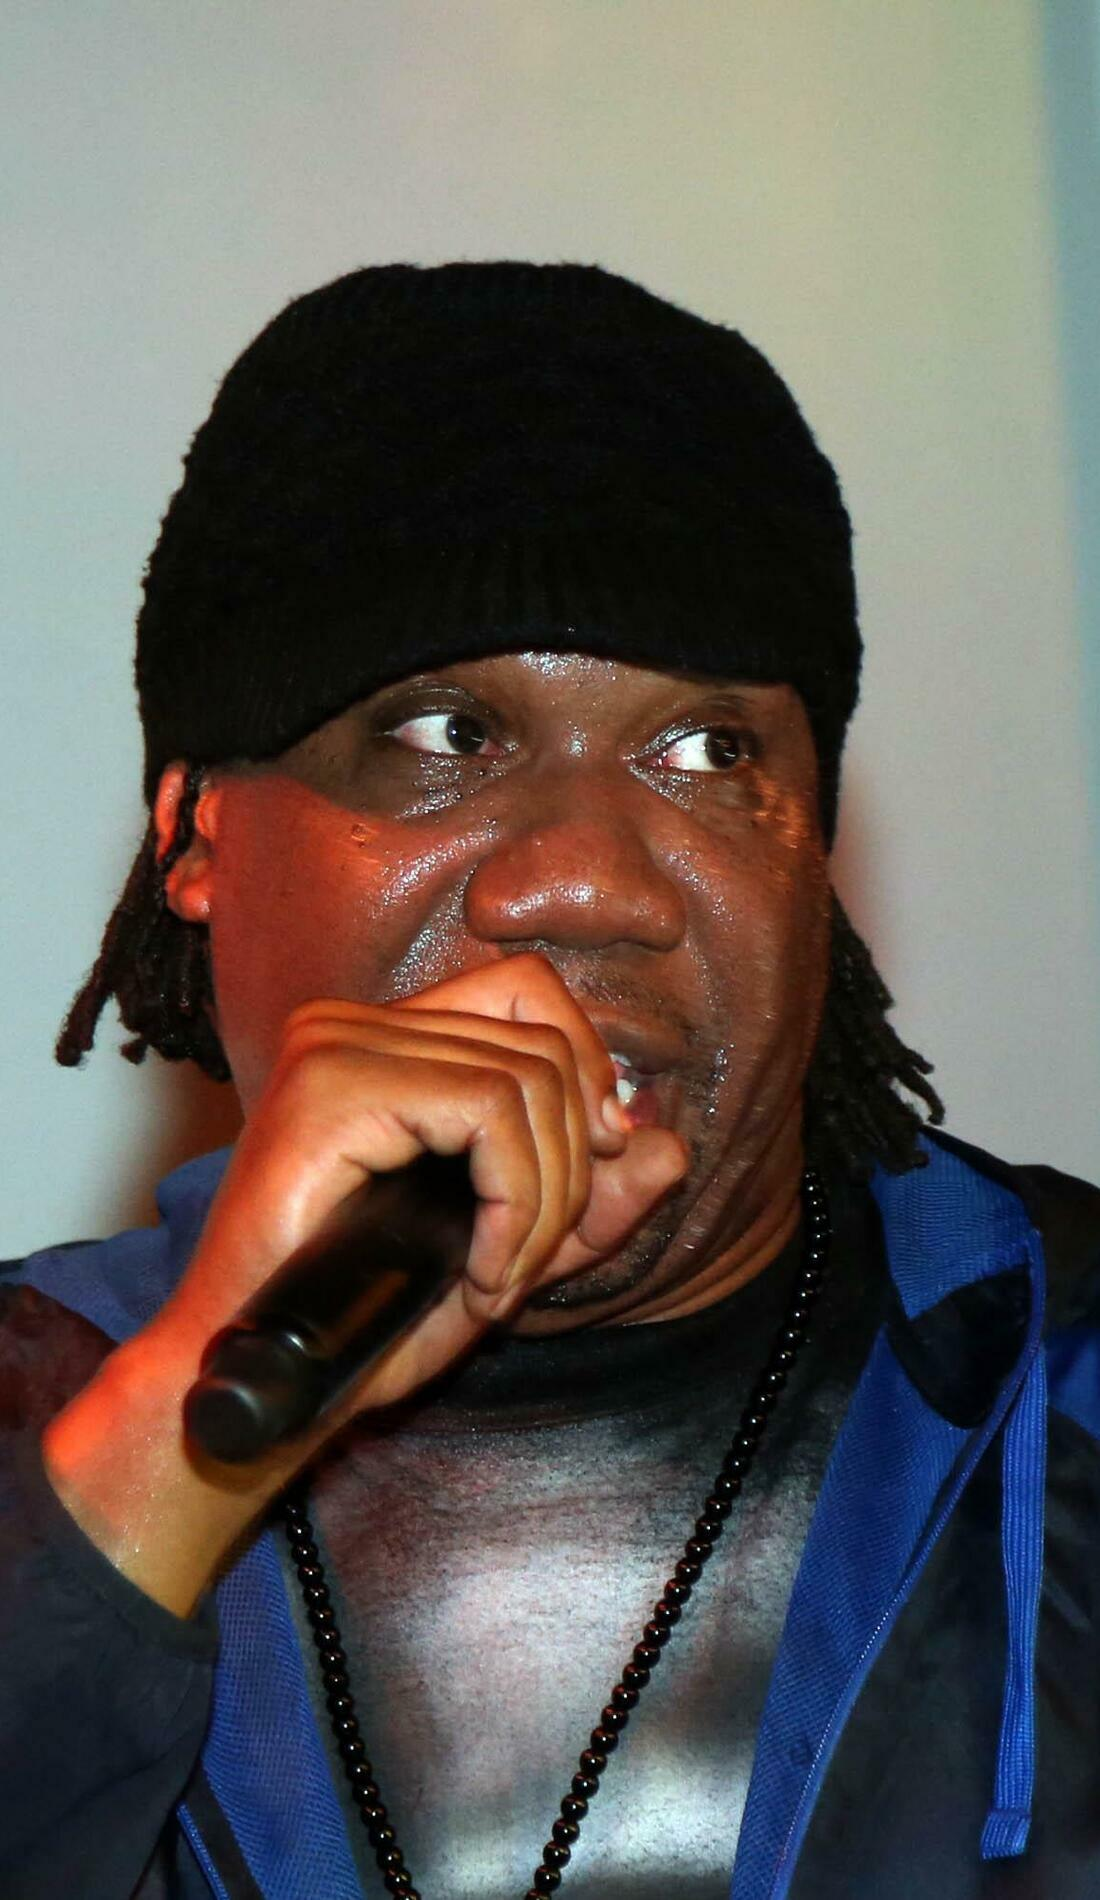 A KRS-One live event